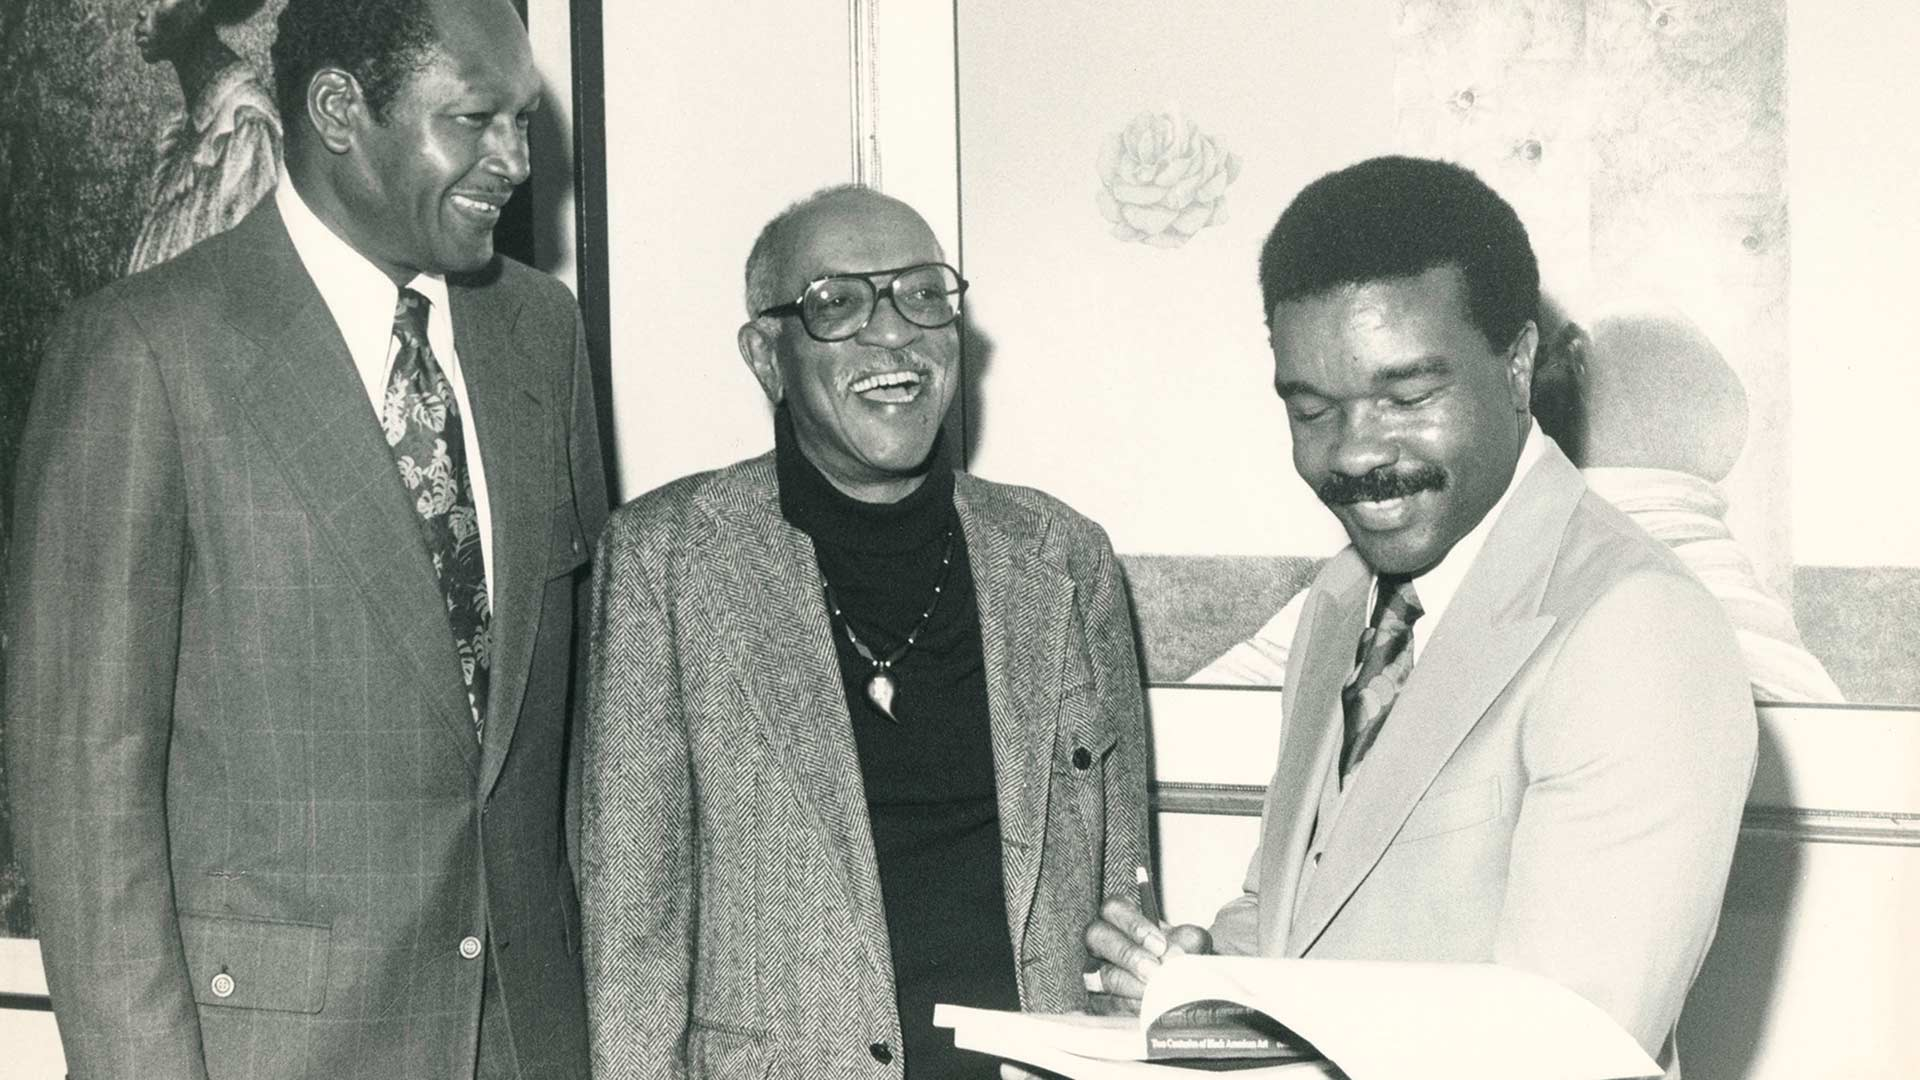 """Los Angeles Mayor Tom Bradley (left), artist Charles White and curator, scholar and artist David C. Driskell talk at the """"Two Centuries of Black American Art"""" exhibition in Los Angeles in 1976. A new crowdsourcing project run by the College of Information Studies and the David C. Driskell Center at UMD will involve the public in preserving Driskell's work. (Photo courtesy of the David C. Driskell Papers at the David C. Driskell Center)"""